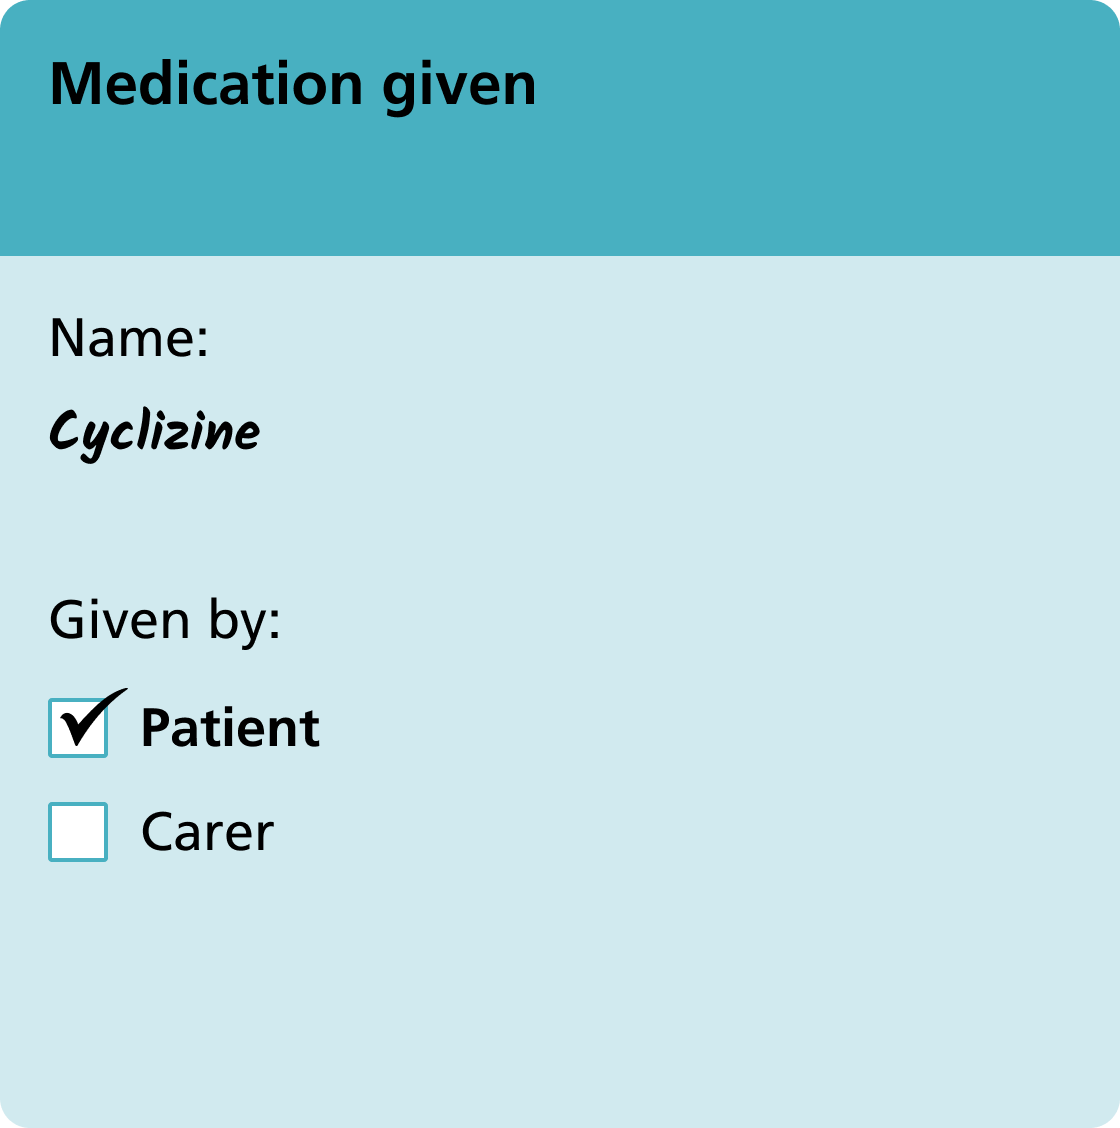 Medication given